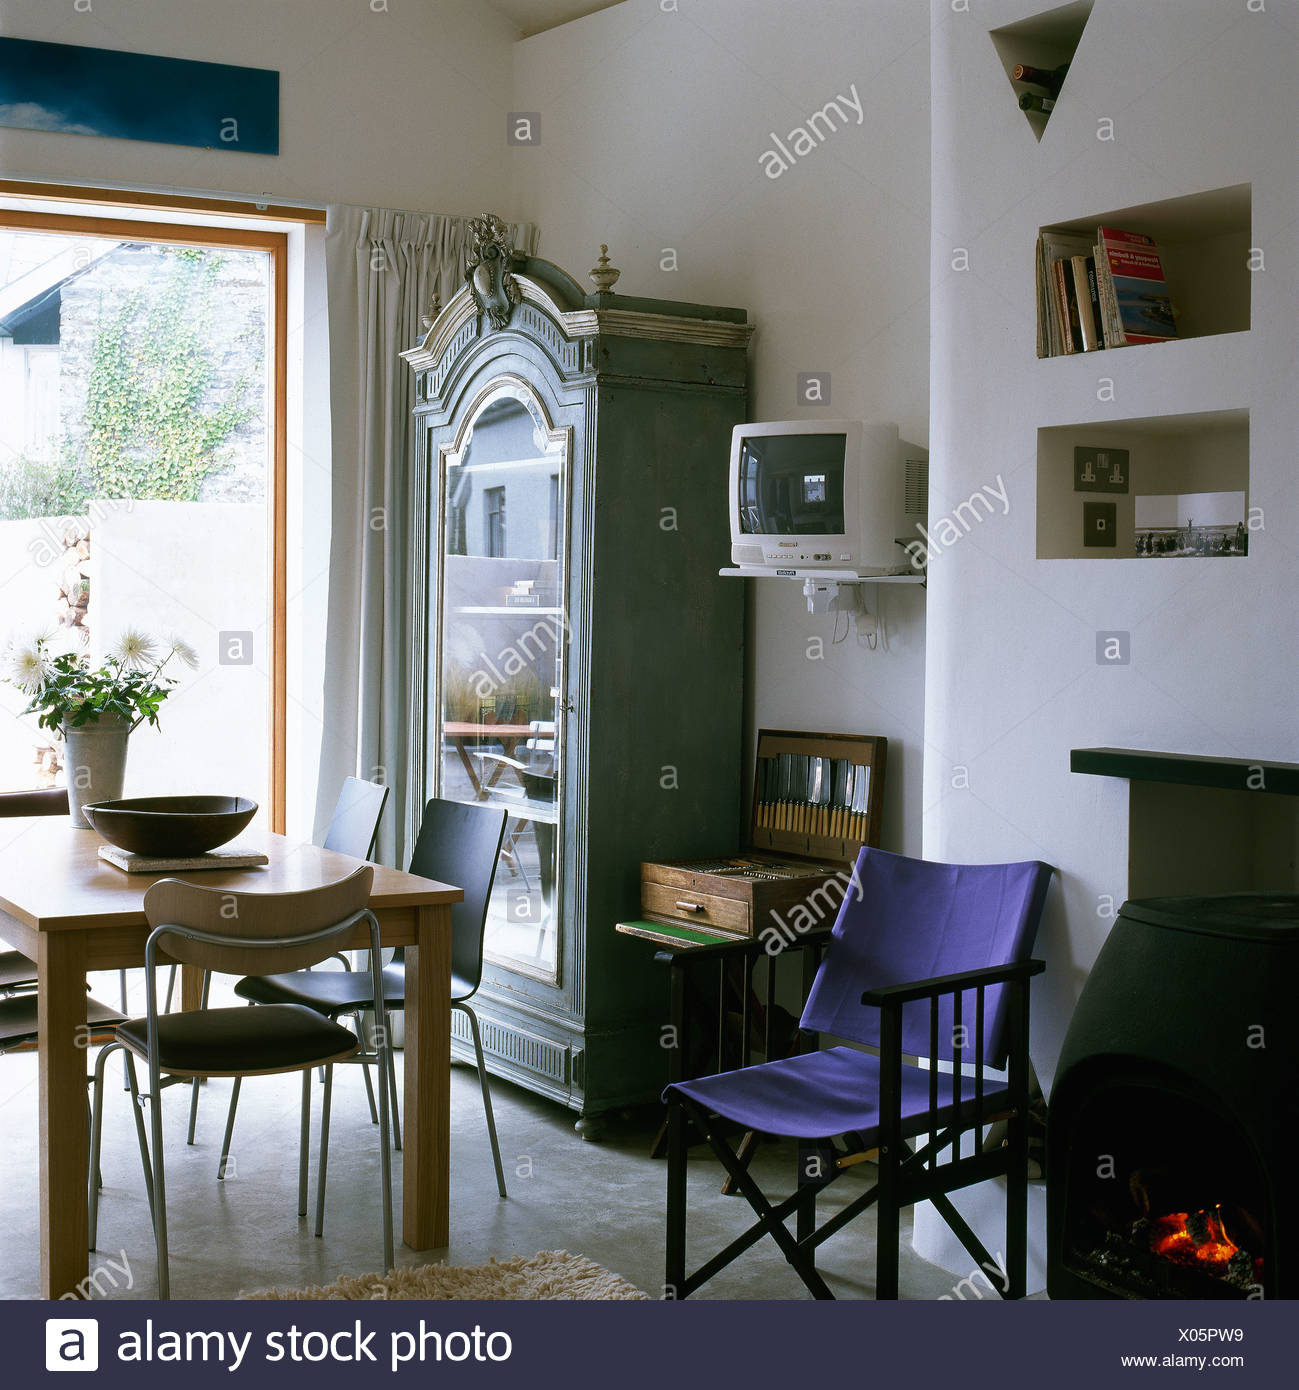 Purple Directoru0027s Chair Beside Wood Burning Stove In Modern Dining Room  With Wall Mounted Television Beside Painted Cupboard